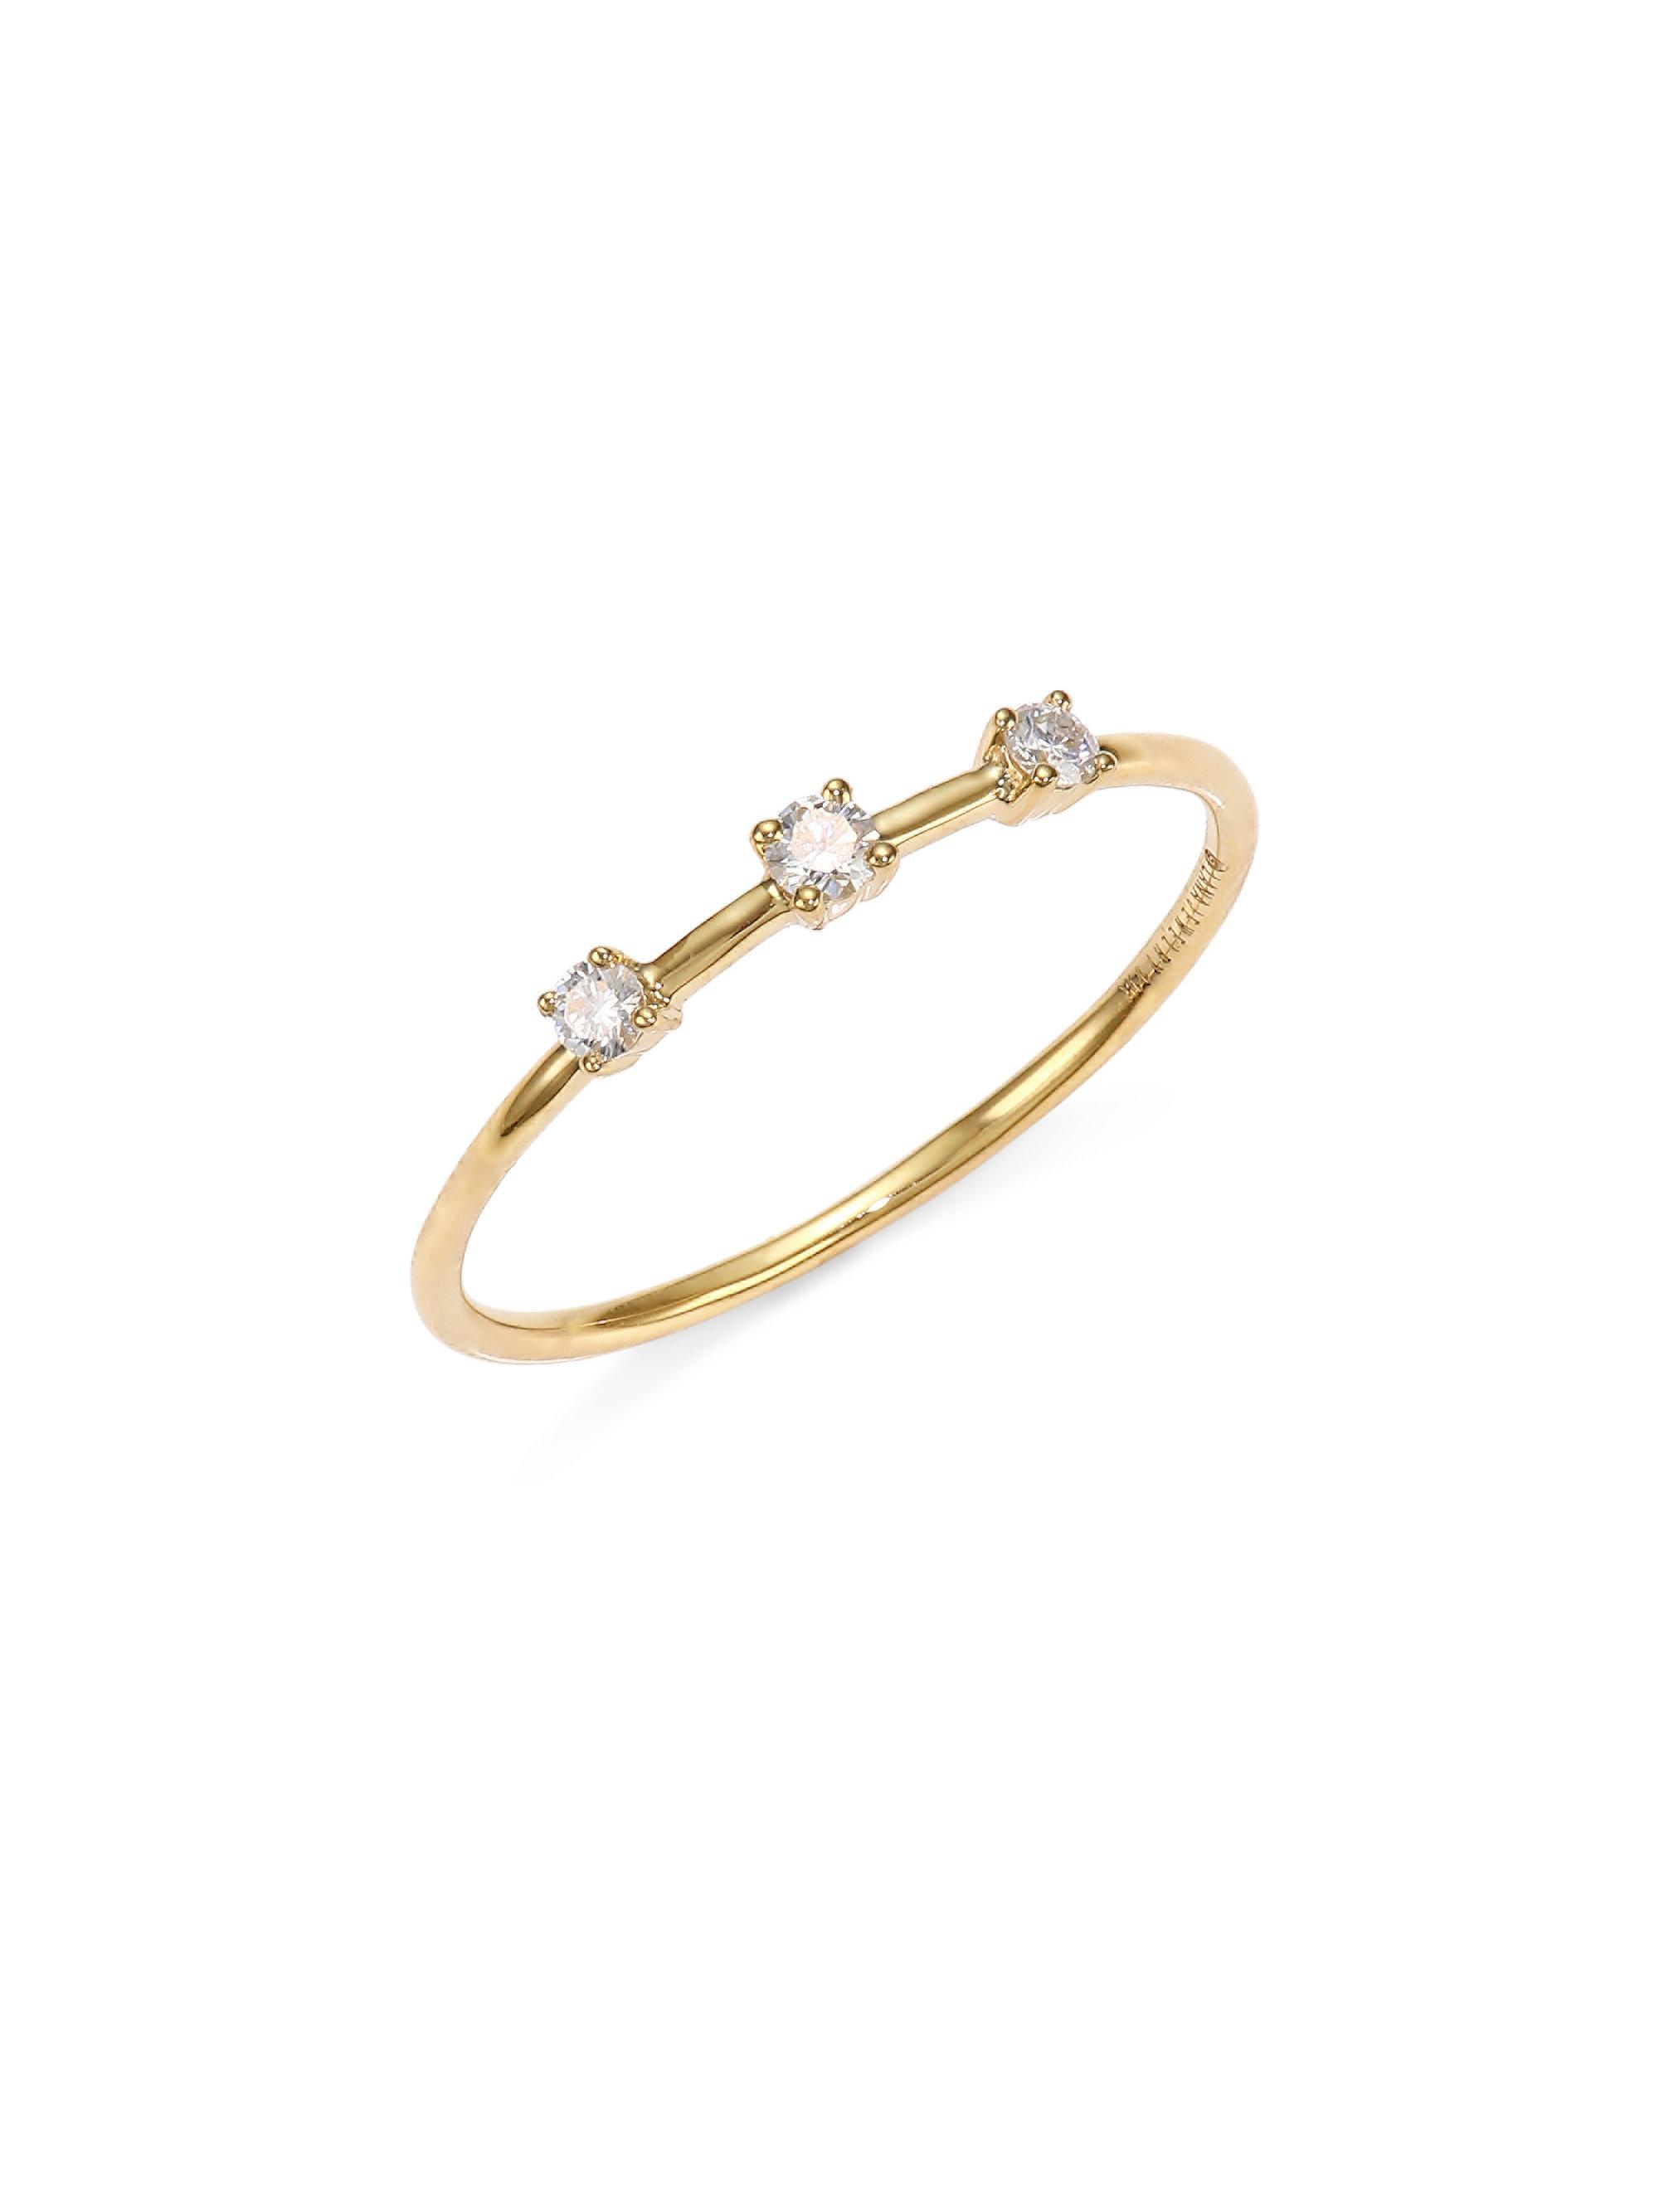 Lana Jewelry Diamond Wrap Bangle in 14K Yellow Gold MkuZvm